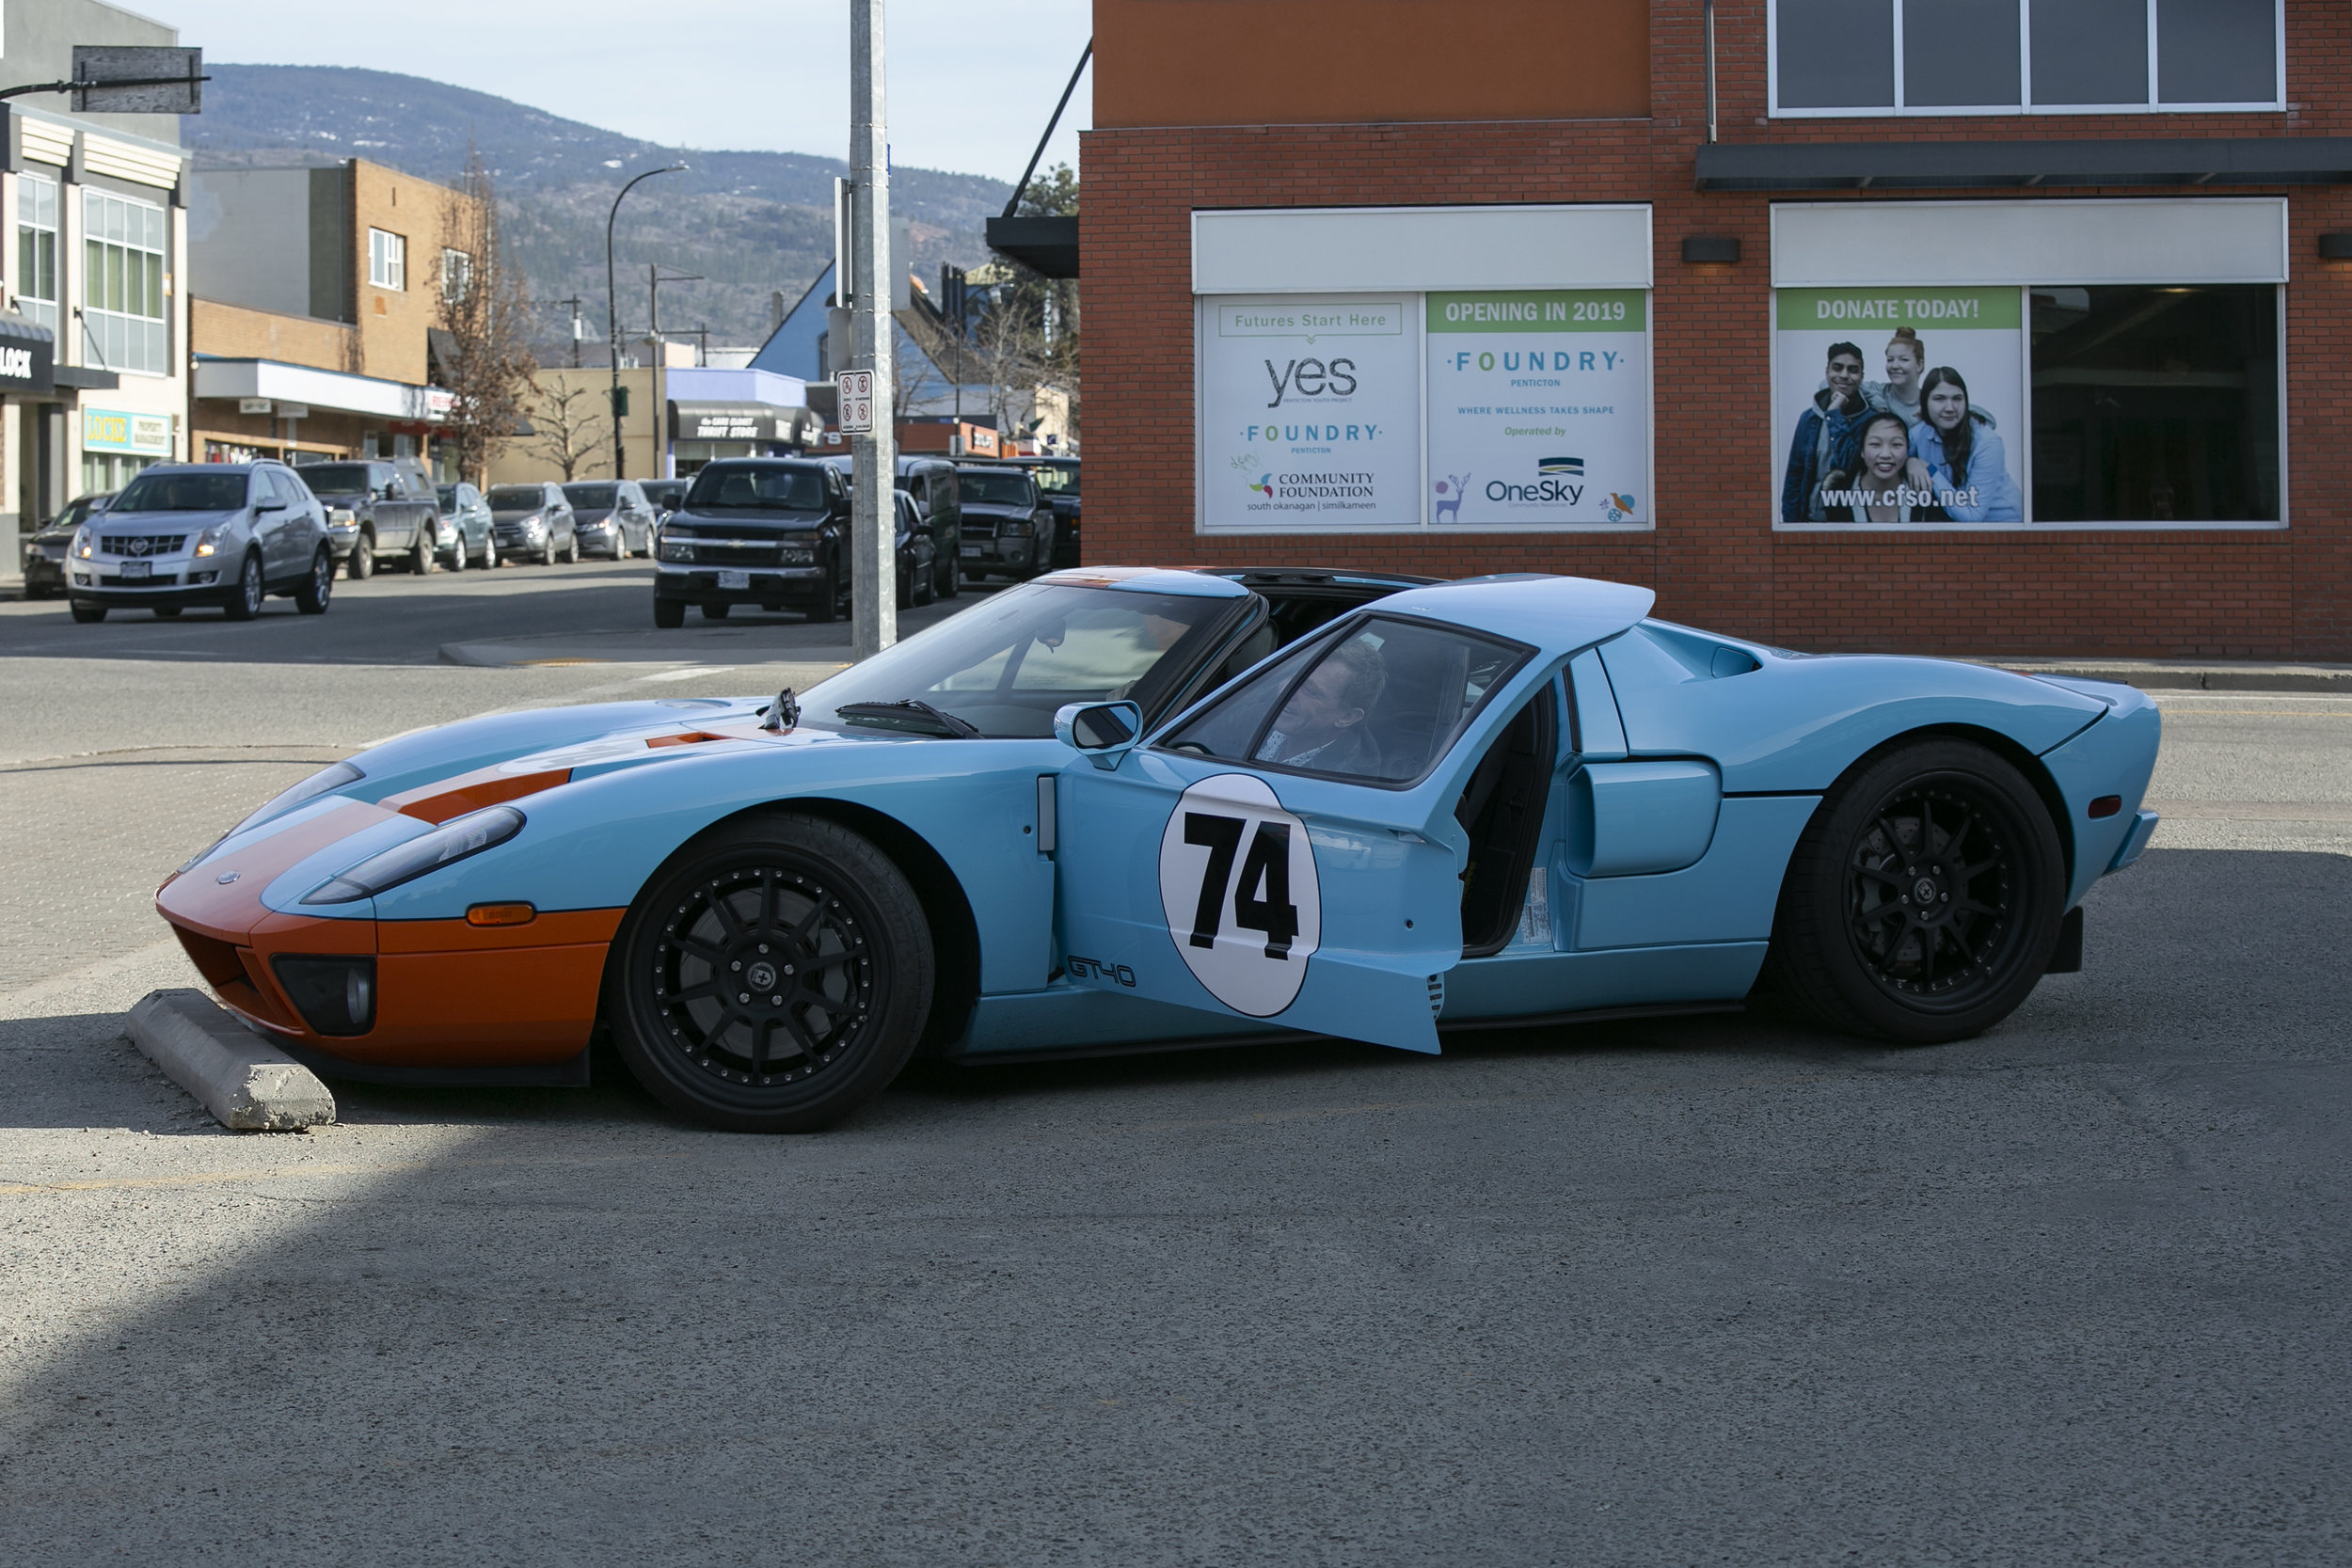 Tom Budd in his Gulf GT40 - after touring the YES Project and The Foundry in Penticton early April 2019.